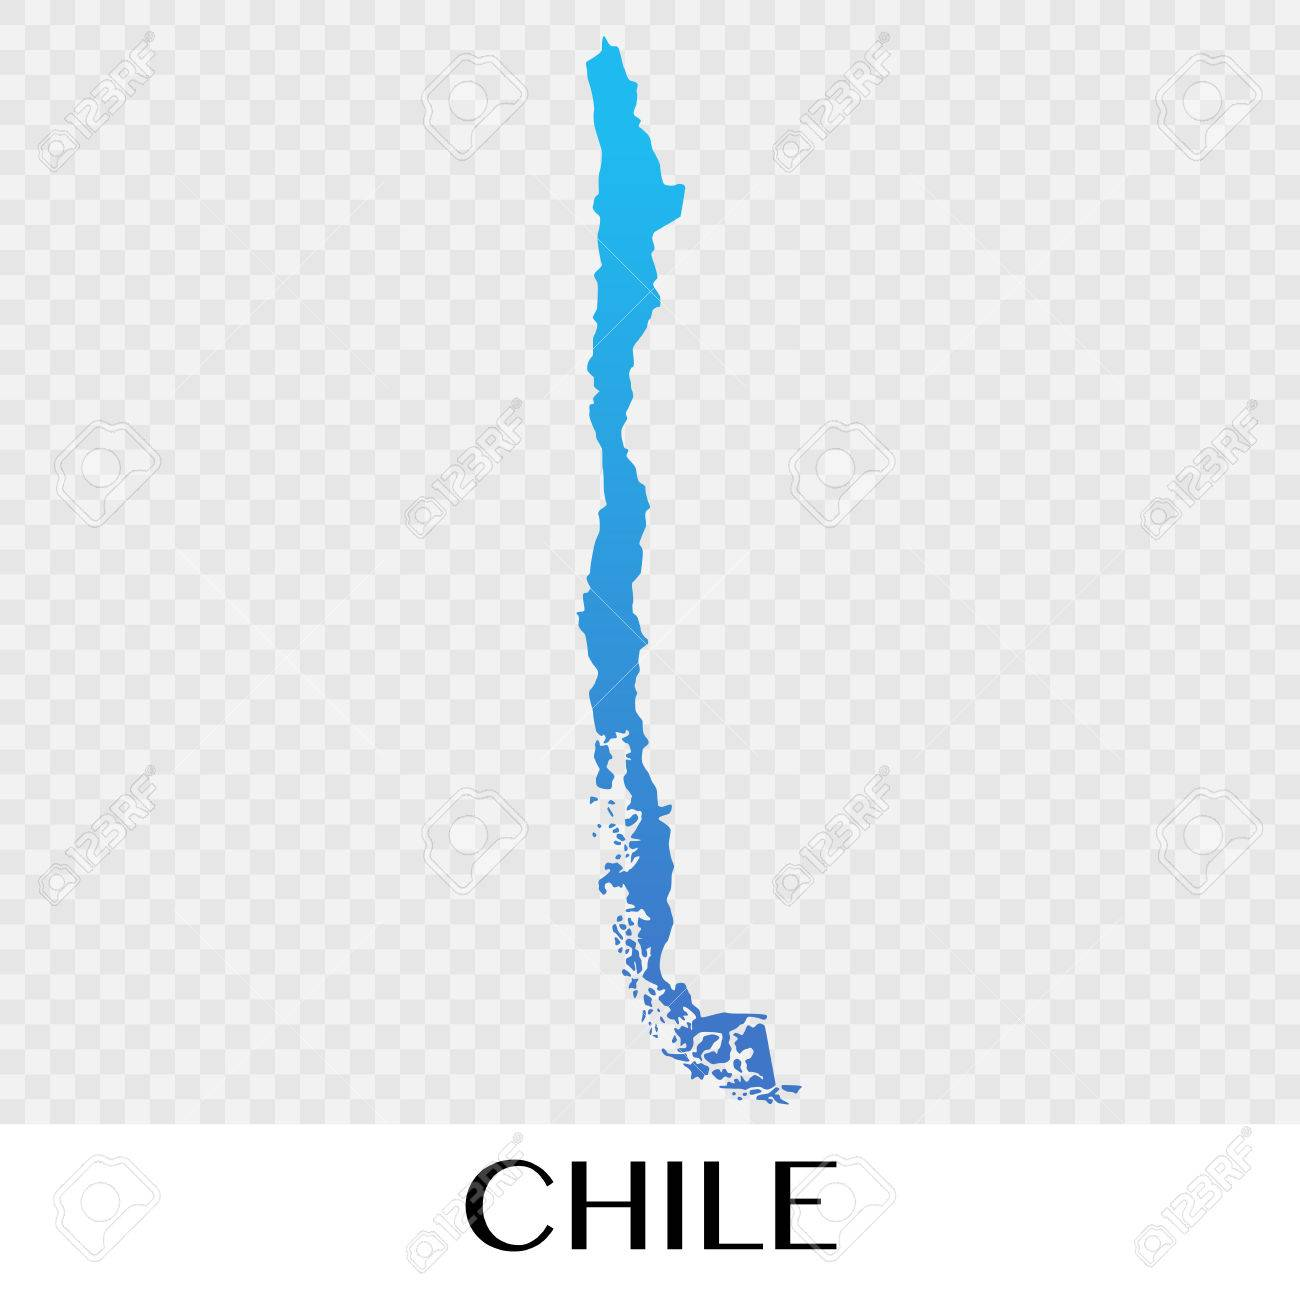 Chile Map In South America Continent Illustration Design Royalty